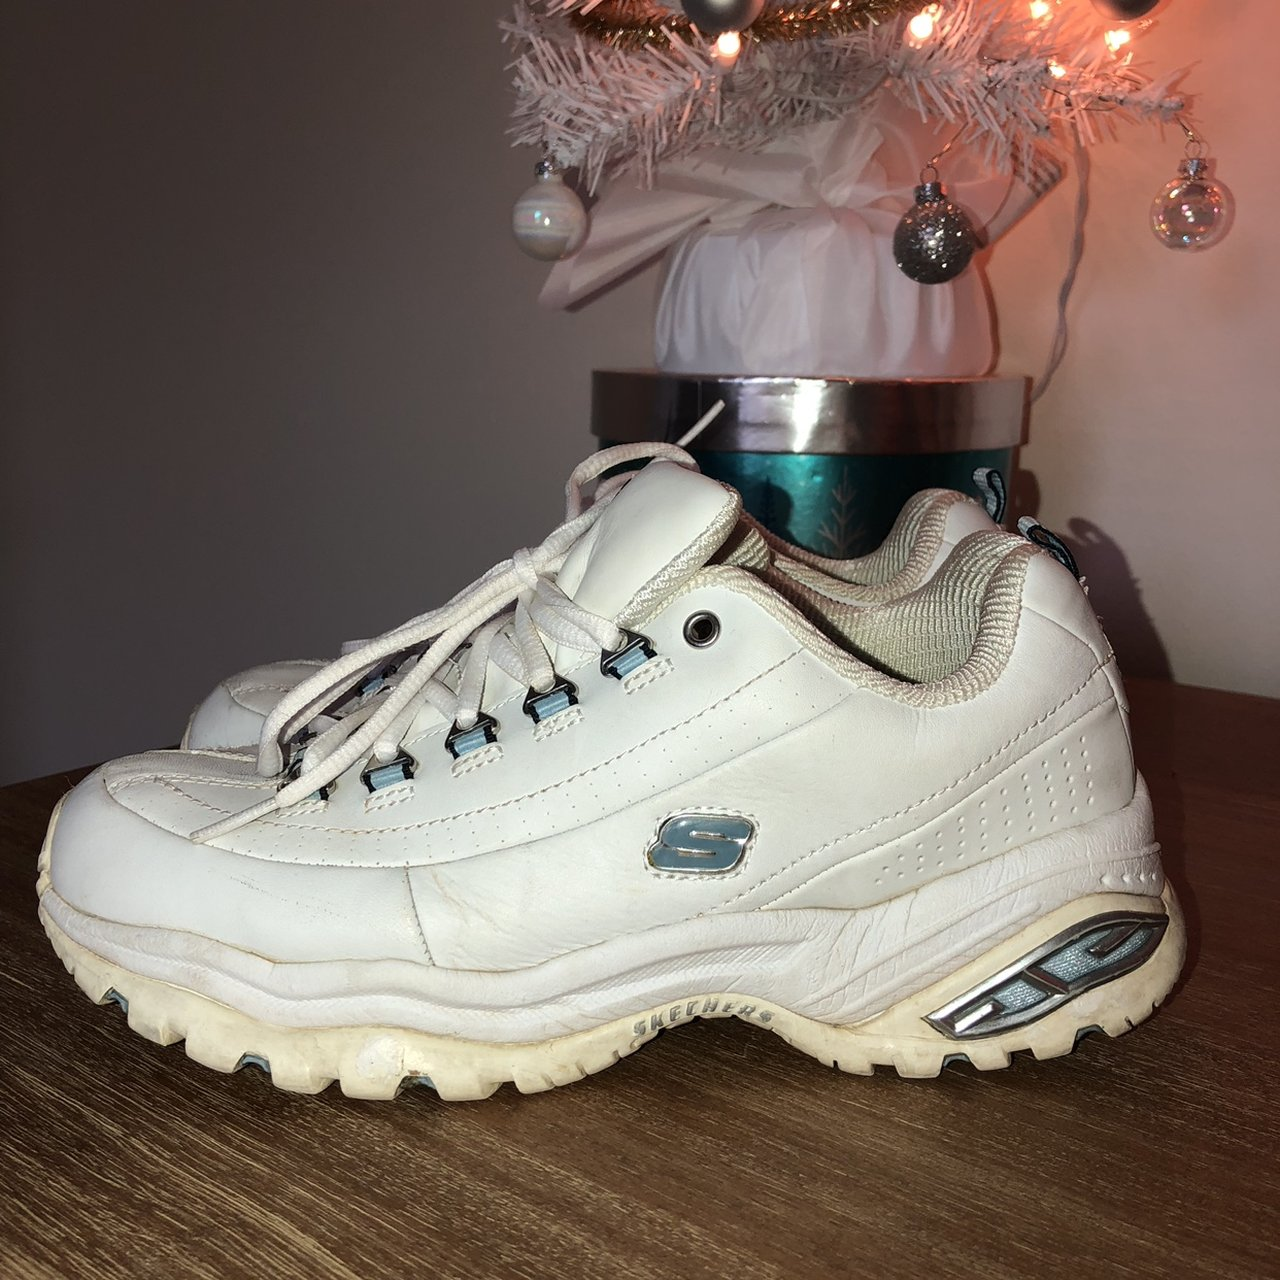 785b6f6a7284 Y chunky skechers shoes amazing white chunky dad sneakers depop jpg  1280x1280 Y2k shoes